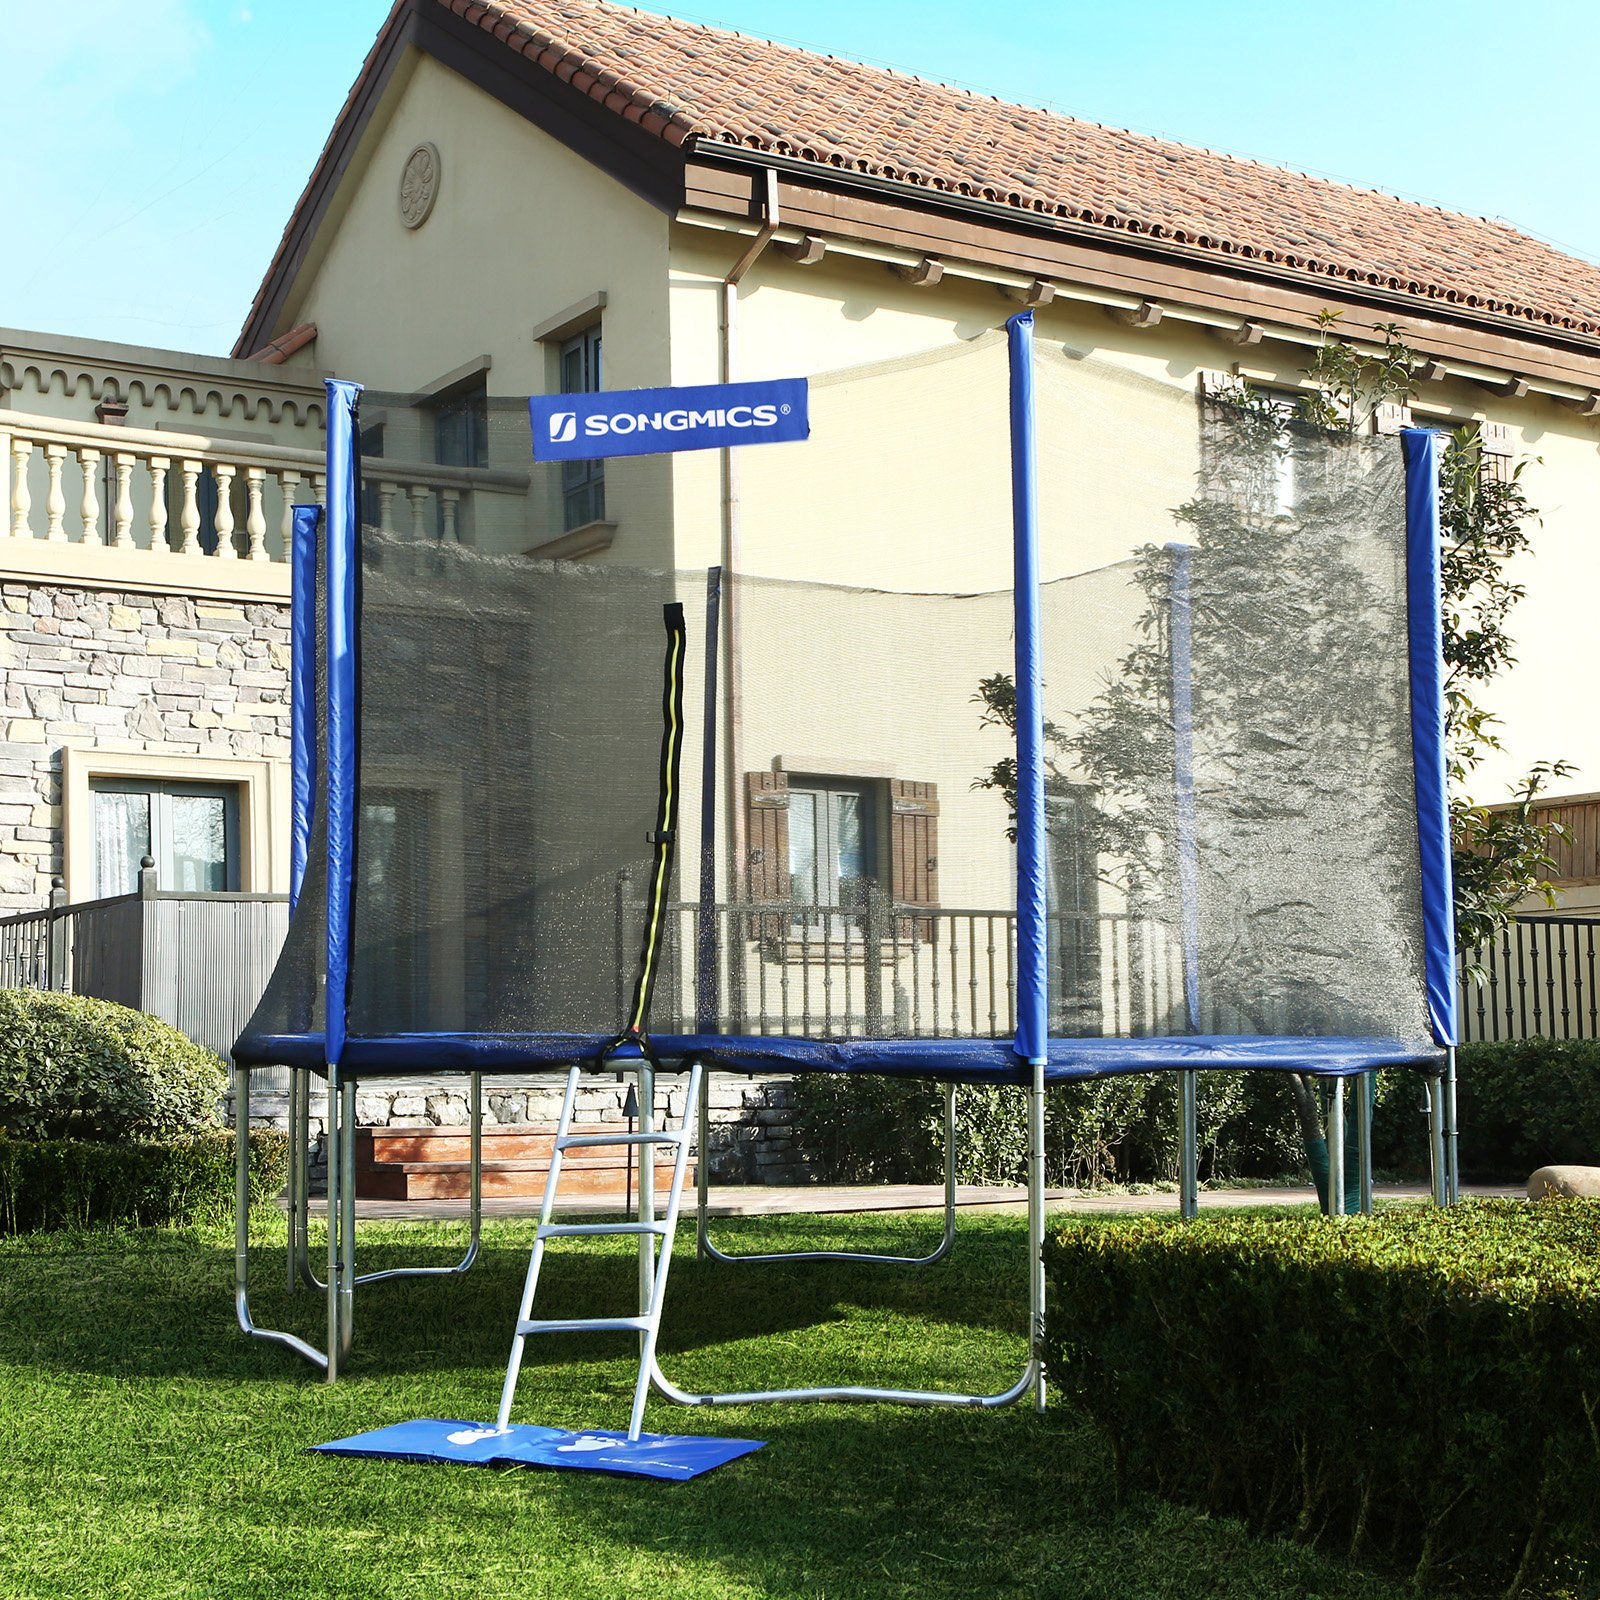 SONGMICS Outdoor Trampoline 12-Feet for Kids with Enclosure Net Jumping Mat and Spring Cover Padding TÜV Rheinland Certificated According to ASTM and GS Standard Blue USTR12FT by SONGMICS (Image #2)